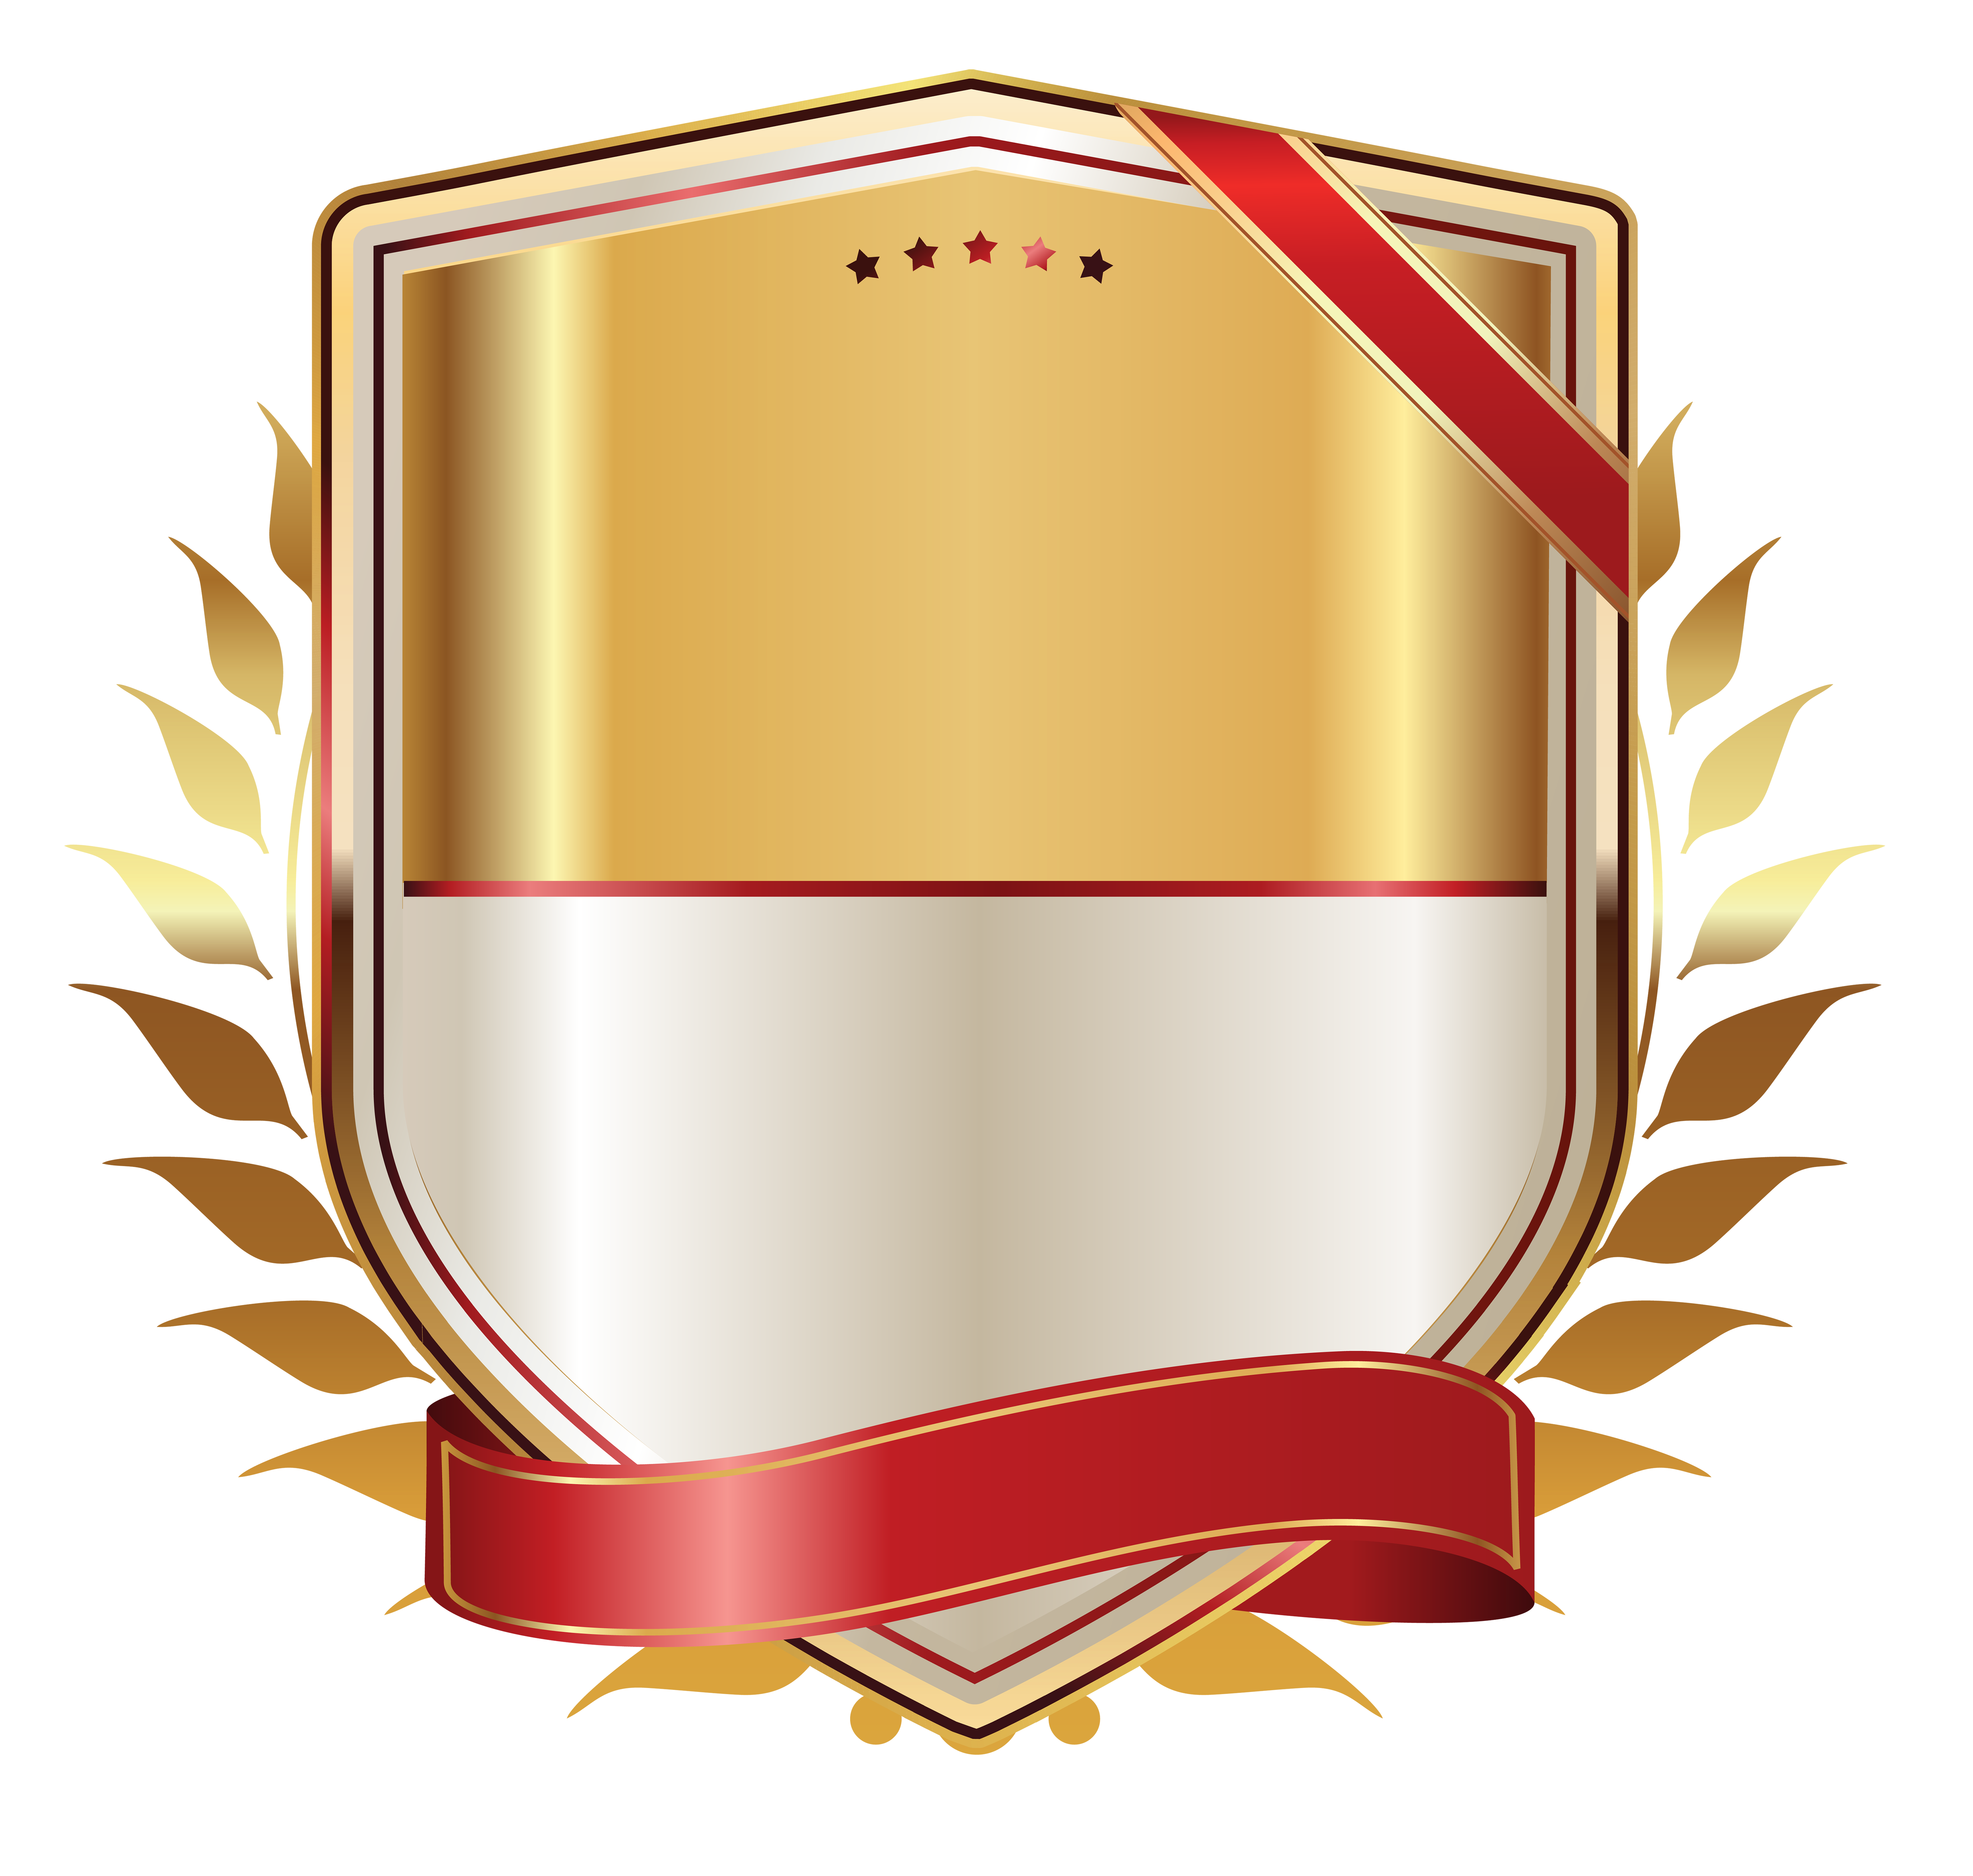 Transparent ribbons logo. Golden label with gold